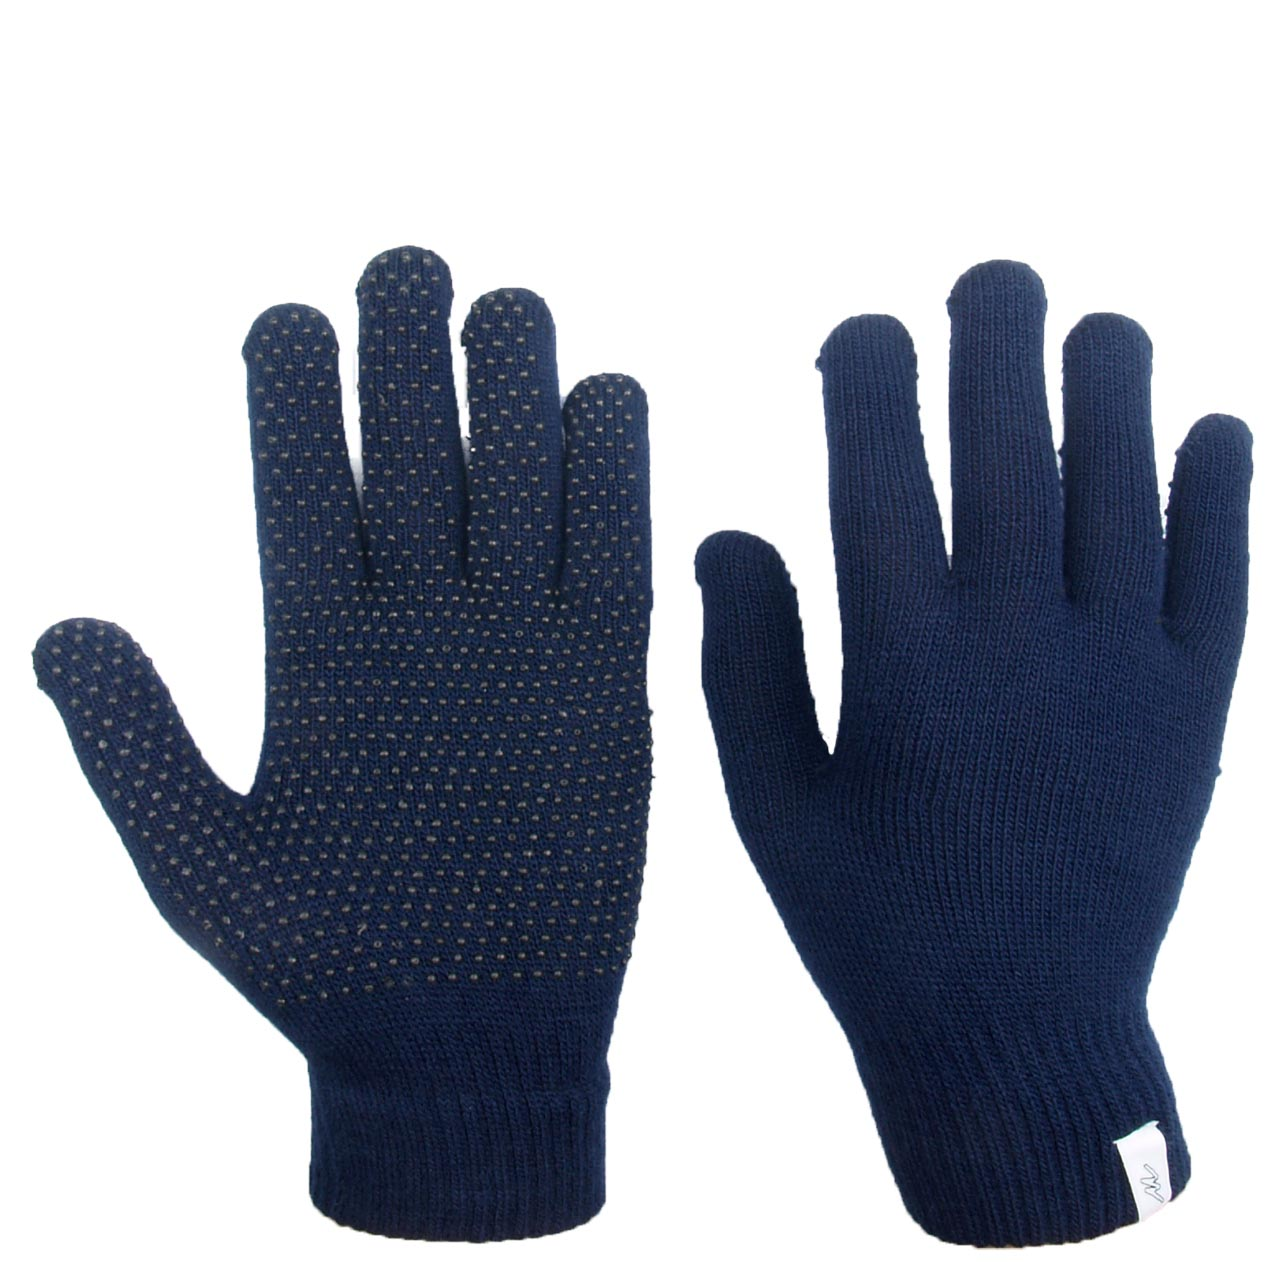 Mondoni Magic Gloves blauw